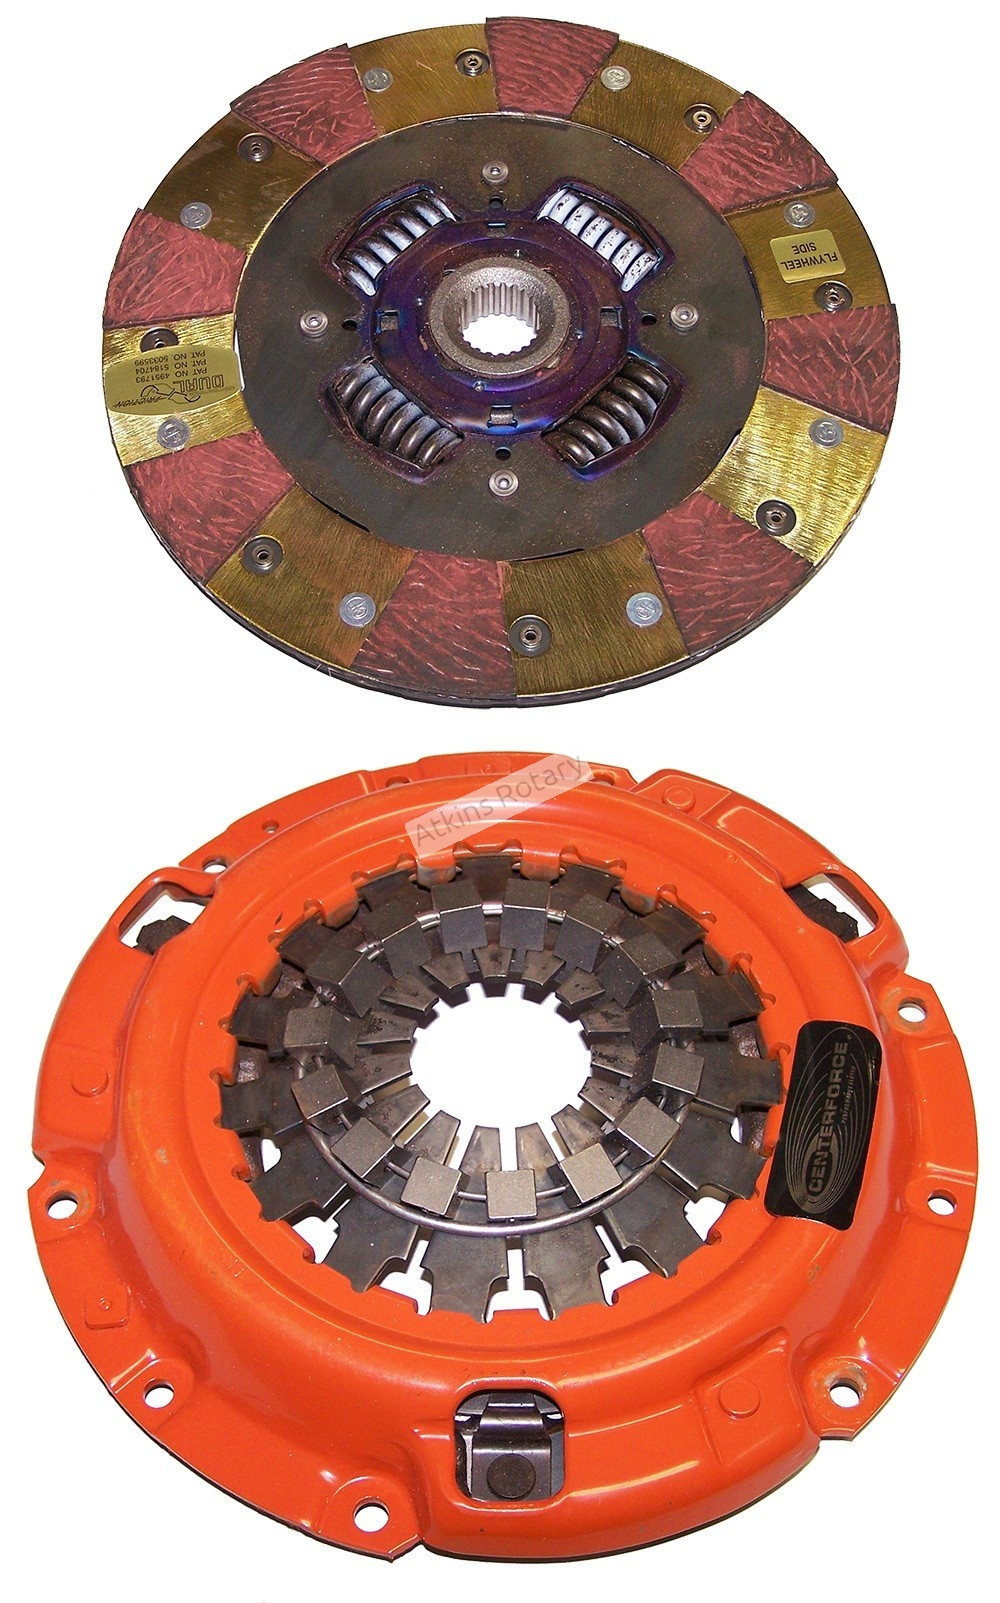 87-91 Turbo Rx7 Centerforce Dual Friction Clutch Kit (DF544020)